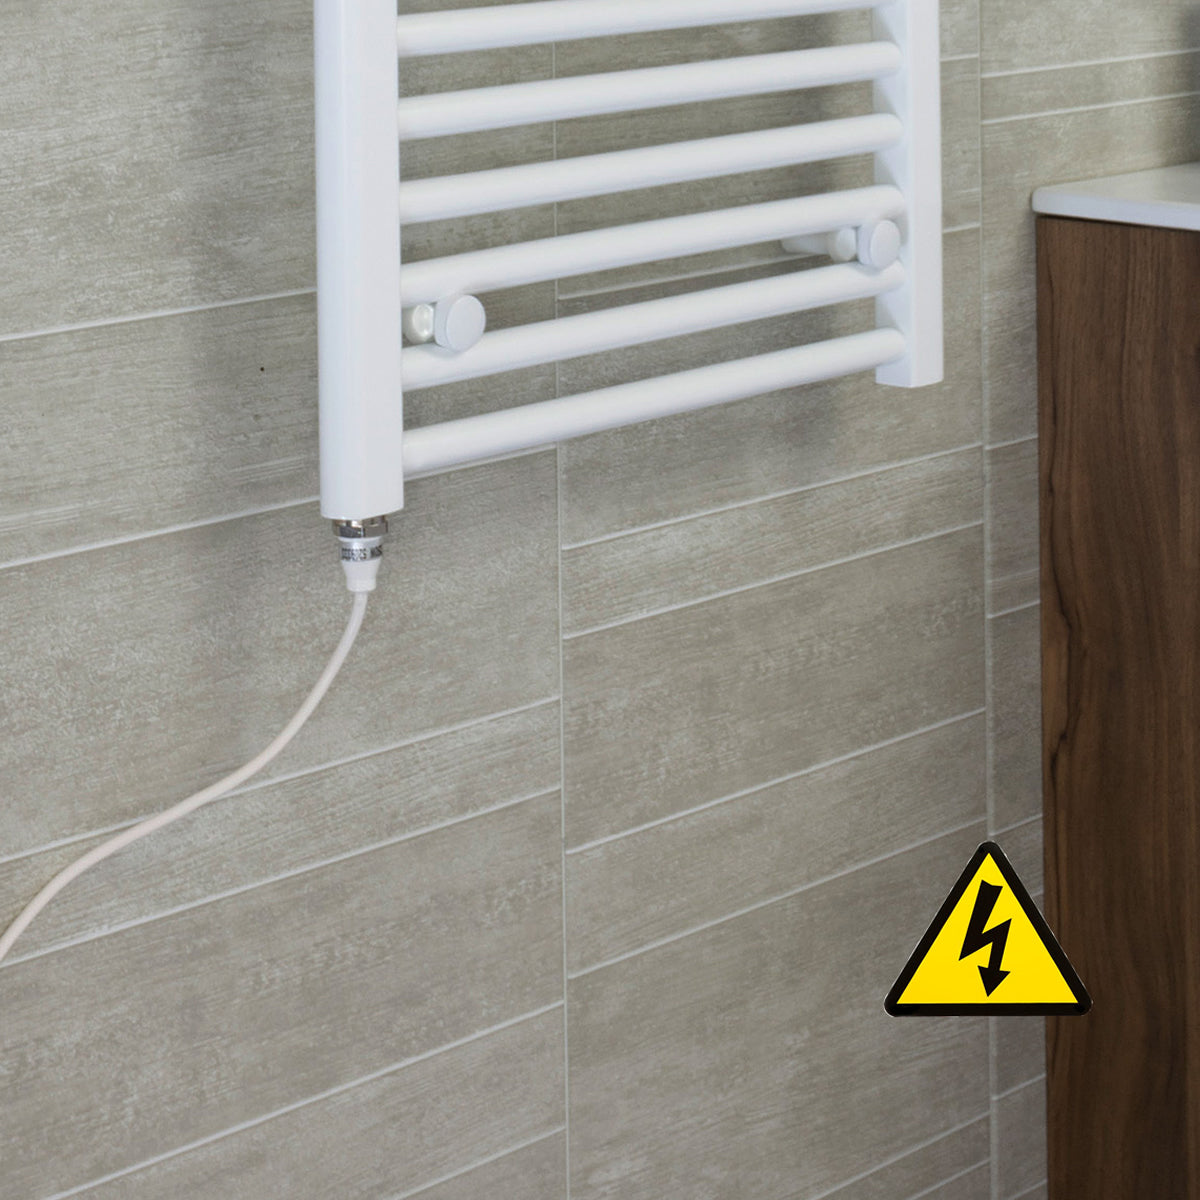 450mm Wide 600mm High Pre-Filled White Electric Towel Rail Radiator With Single Heat Element